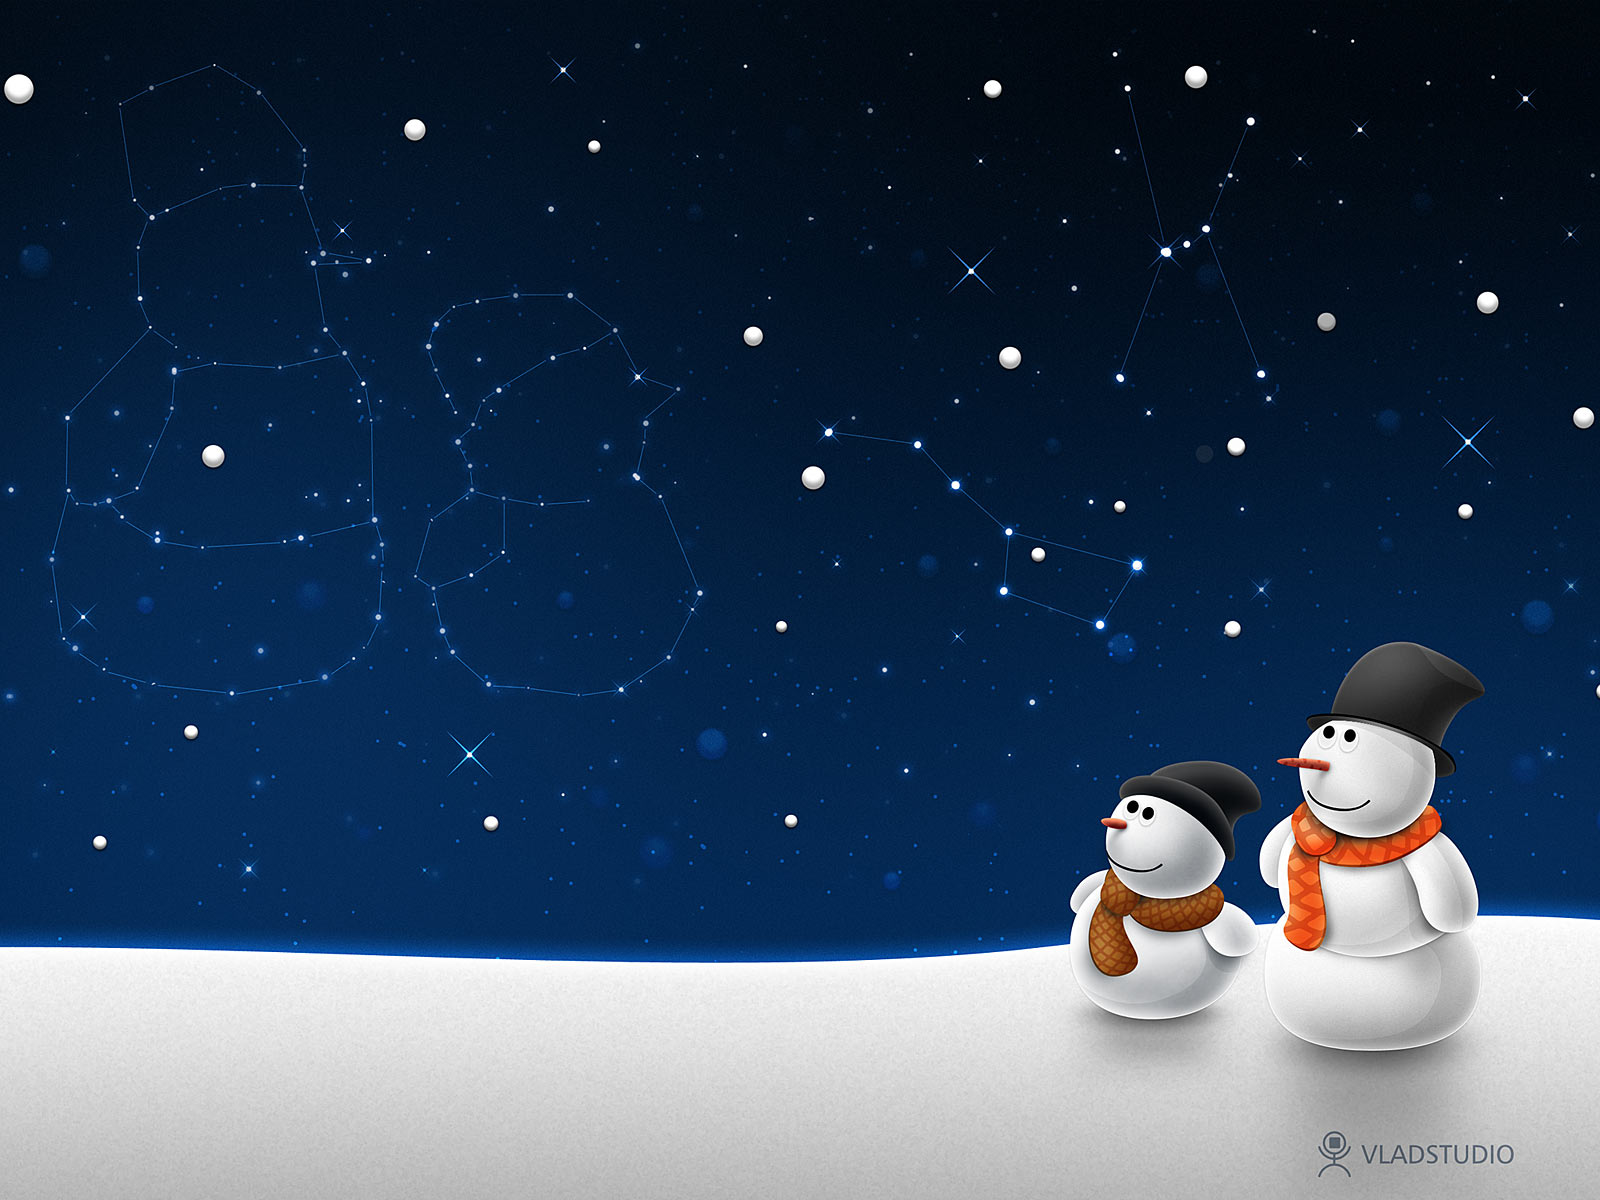 Collection of Free Christmas Wallpaper For Pc on HDWallpapers